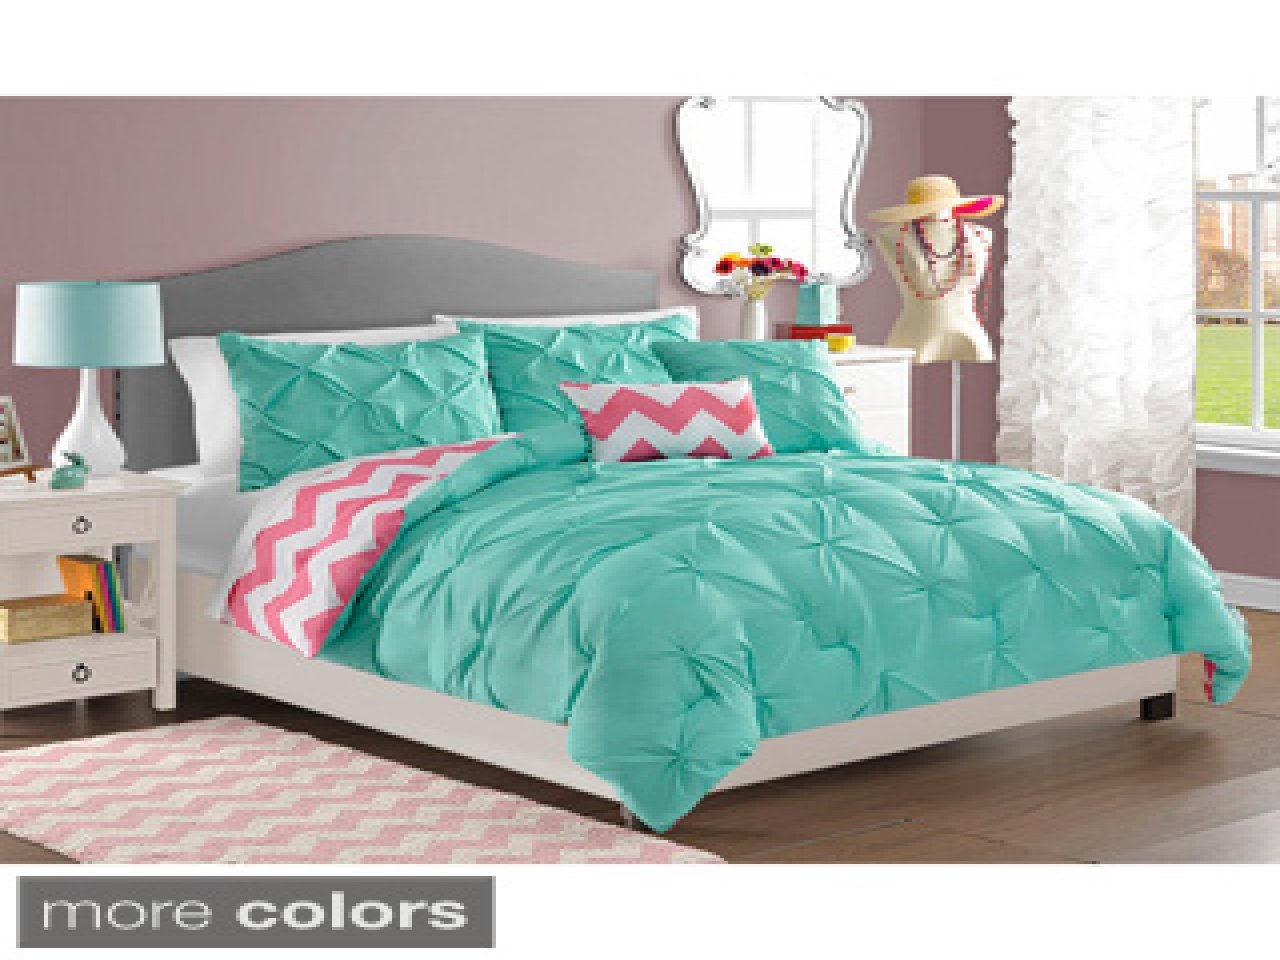 Bedroom Cute Teenage Bedspreads Design For Girl Bedroom